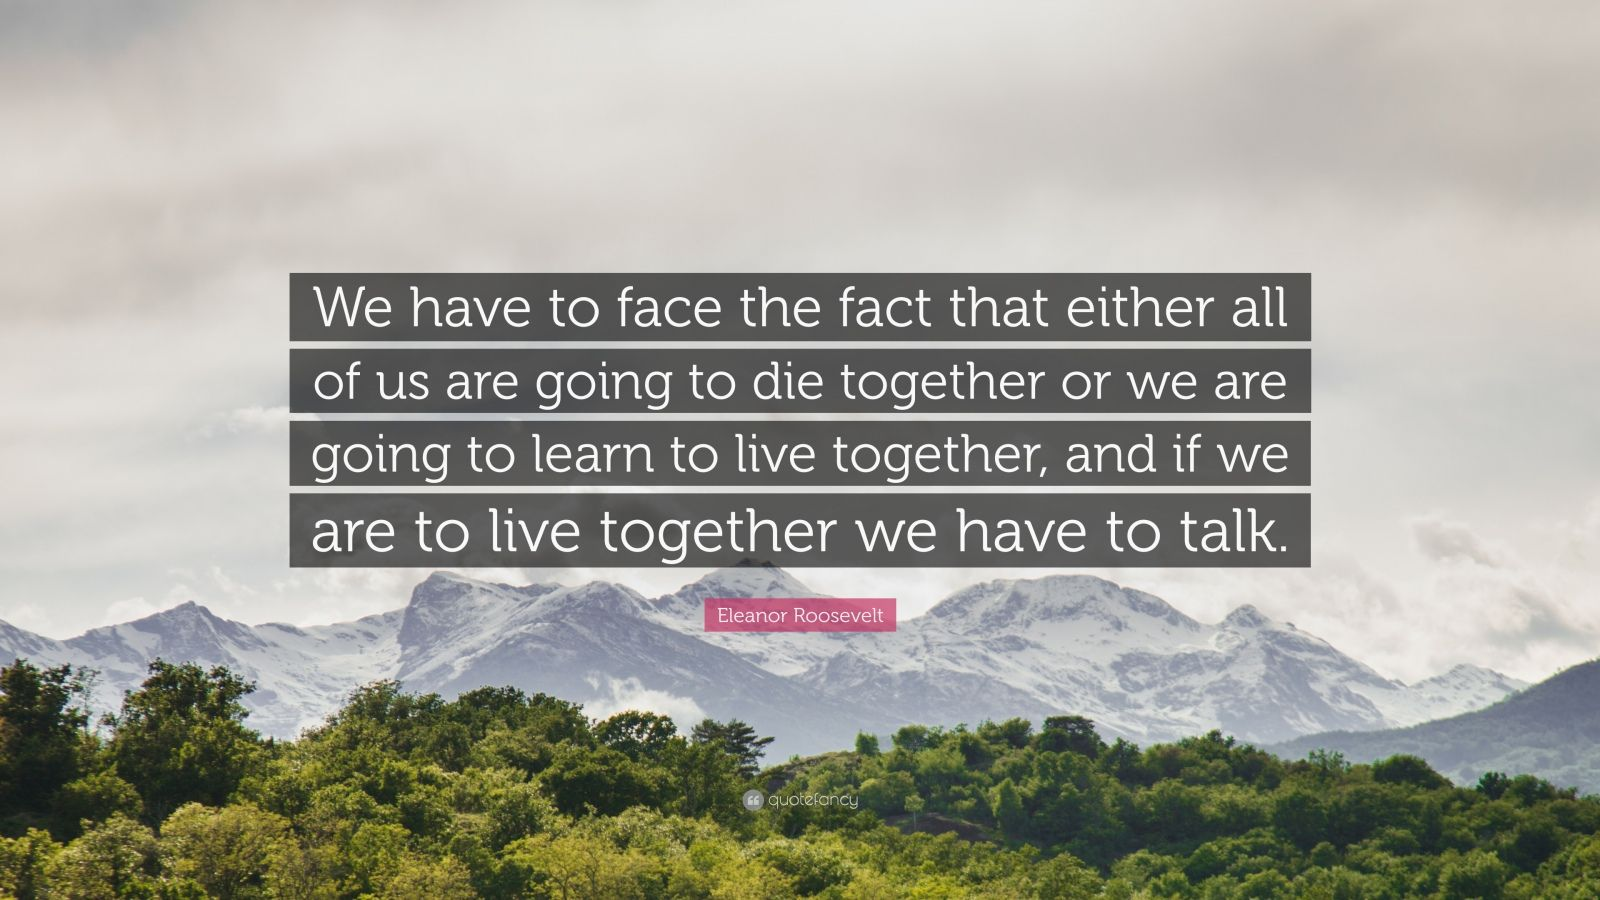 """Eleanor Roosevelt Quote: """"We have to face the fact that either all of us are going to die together or we are going to learn to live together, and if we are to live together we have to talk."""""""